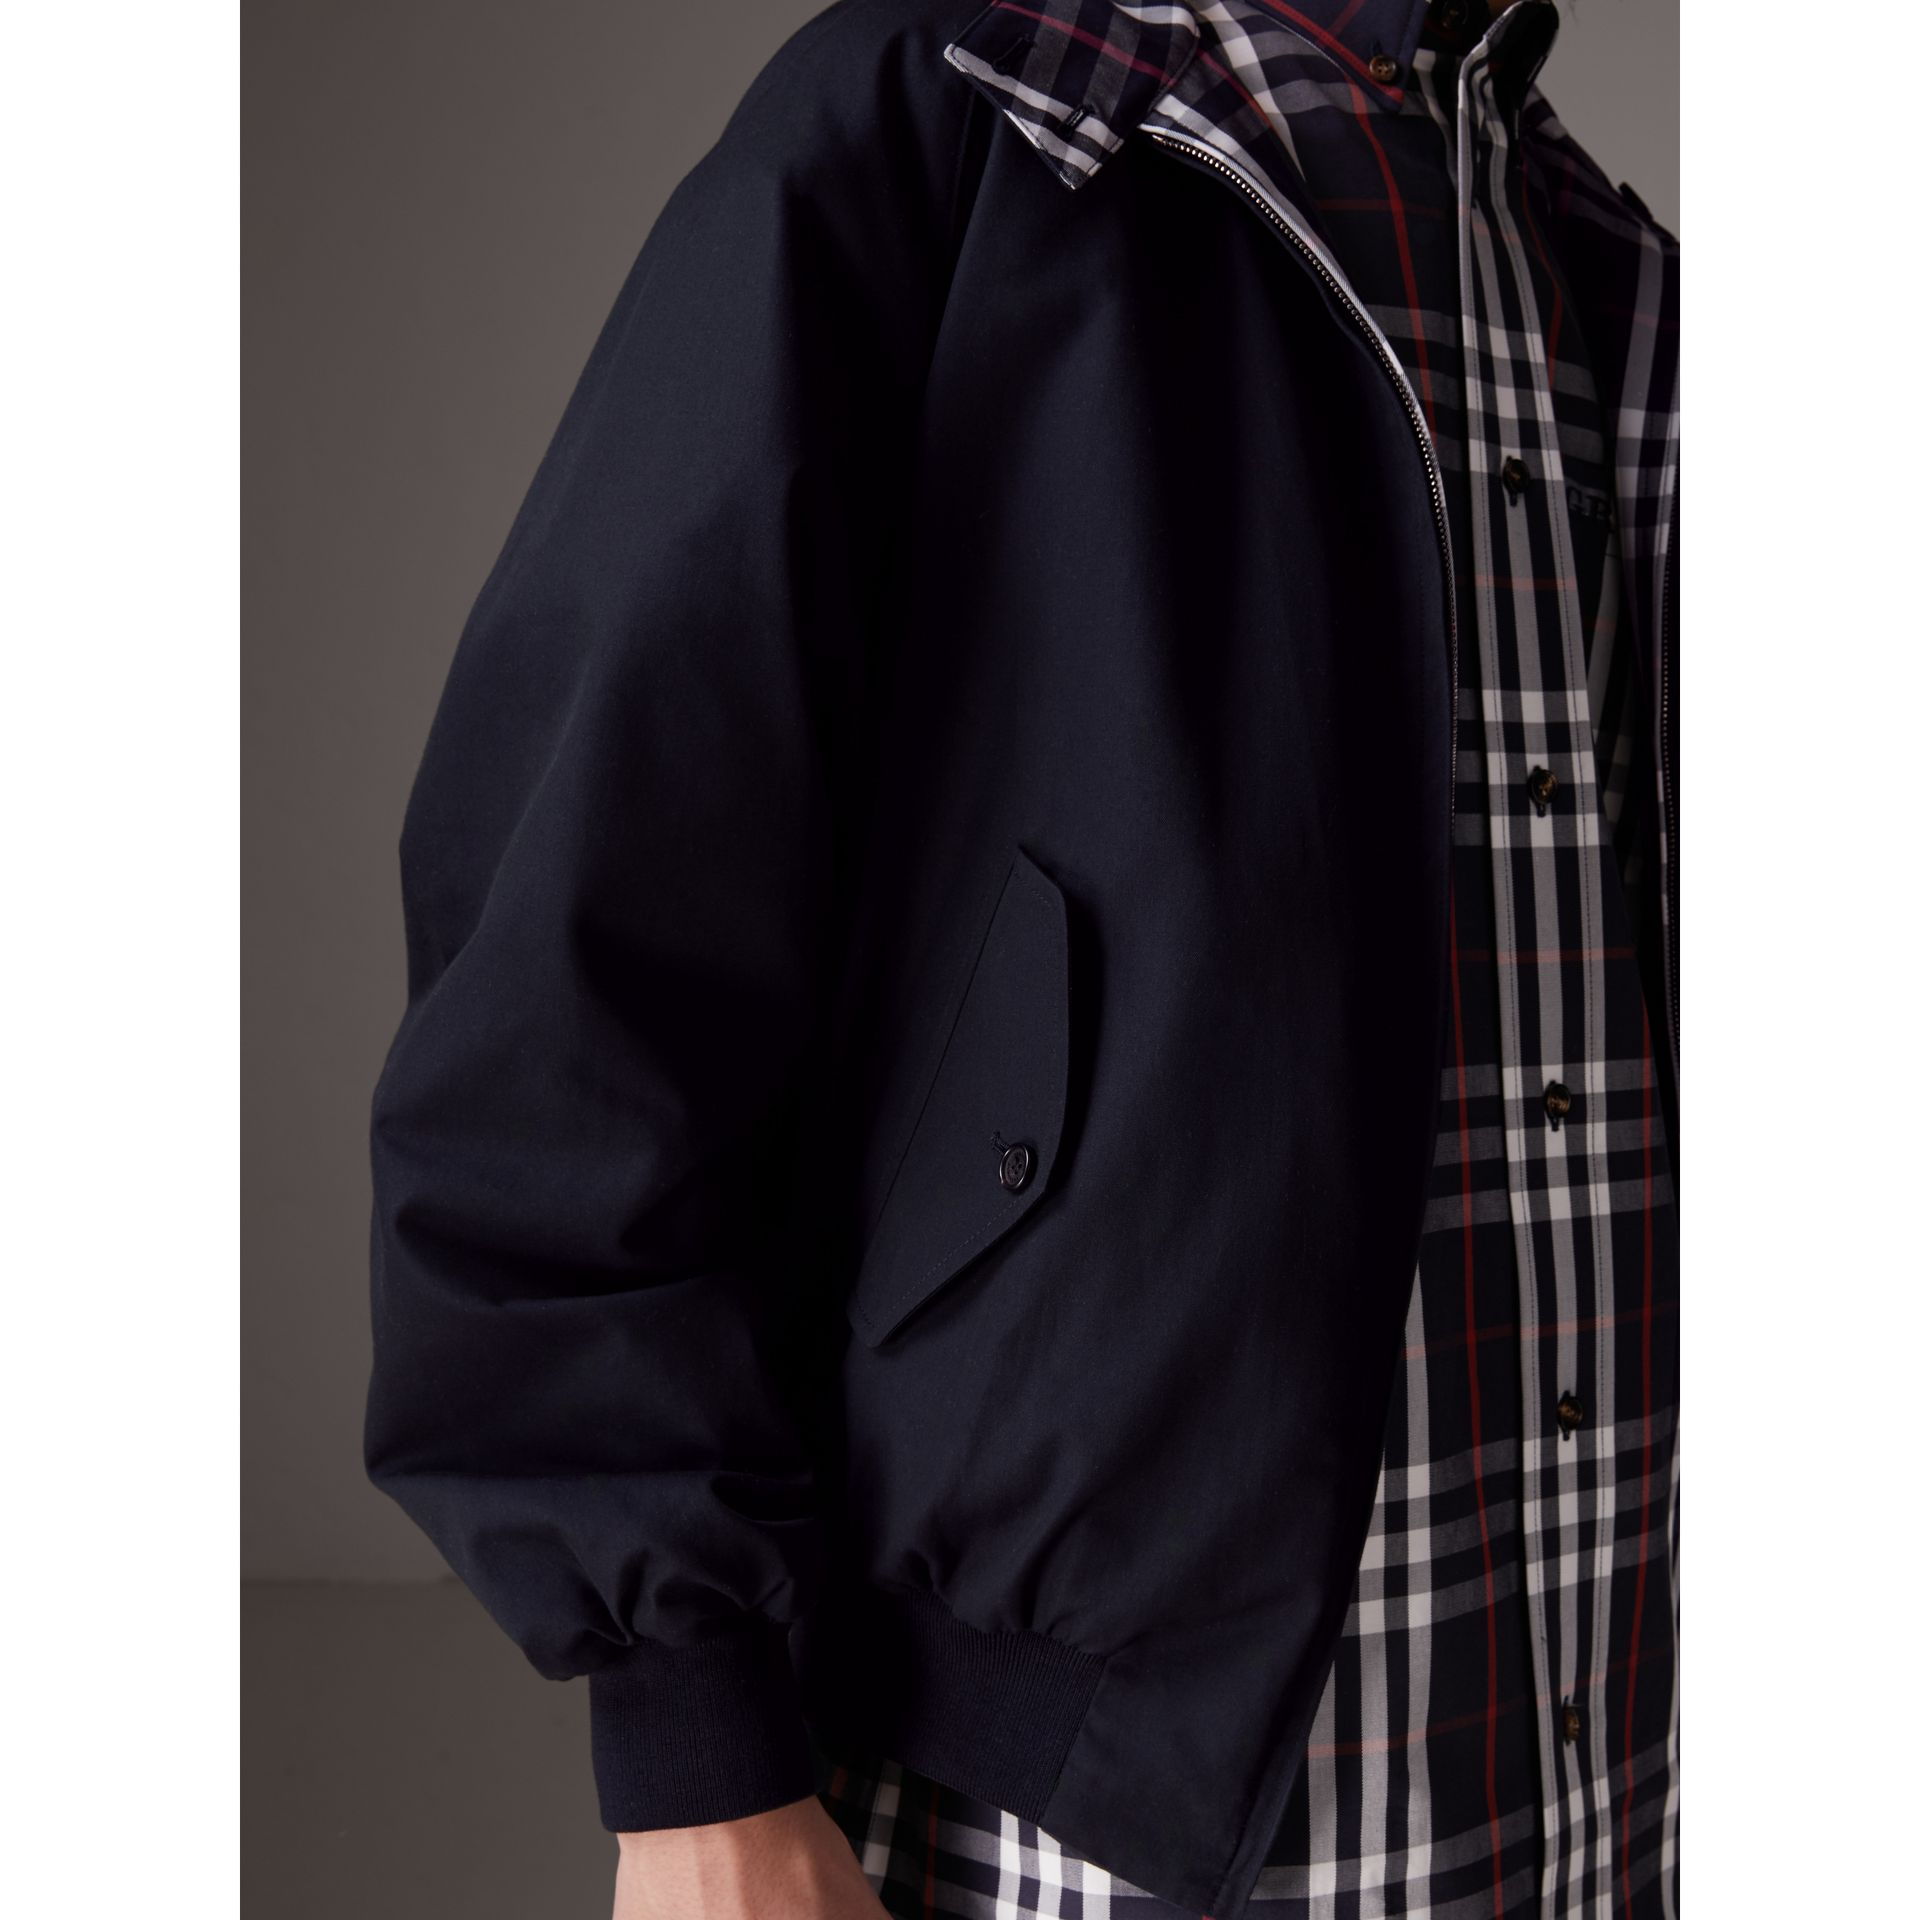 Gosha x Burberry Reversible Harrington Jacket in Navy | Burberry - gallery image 1